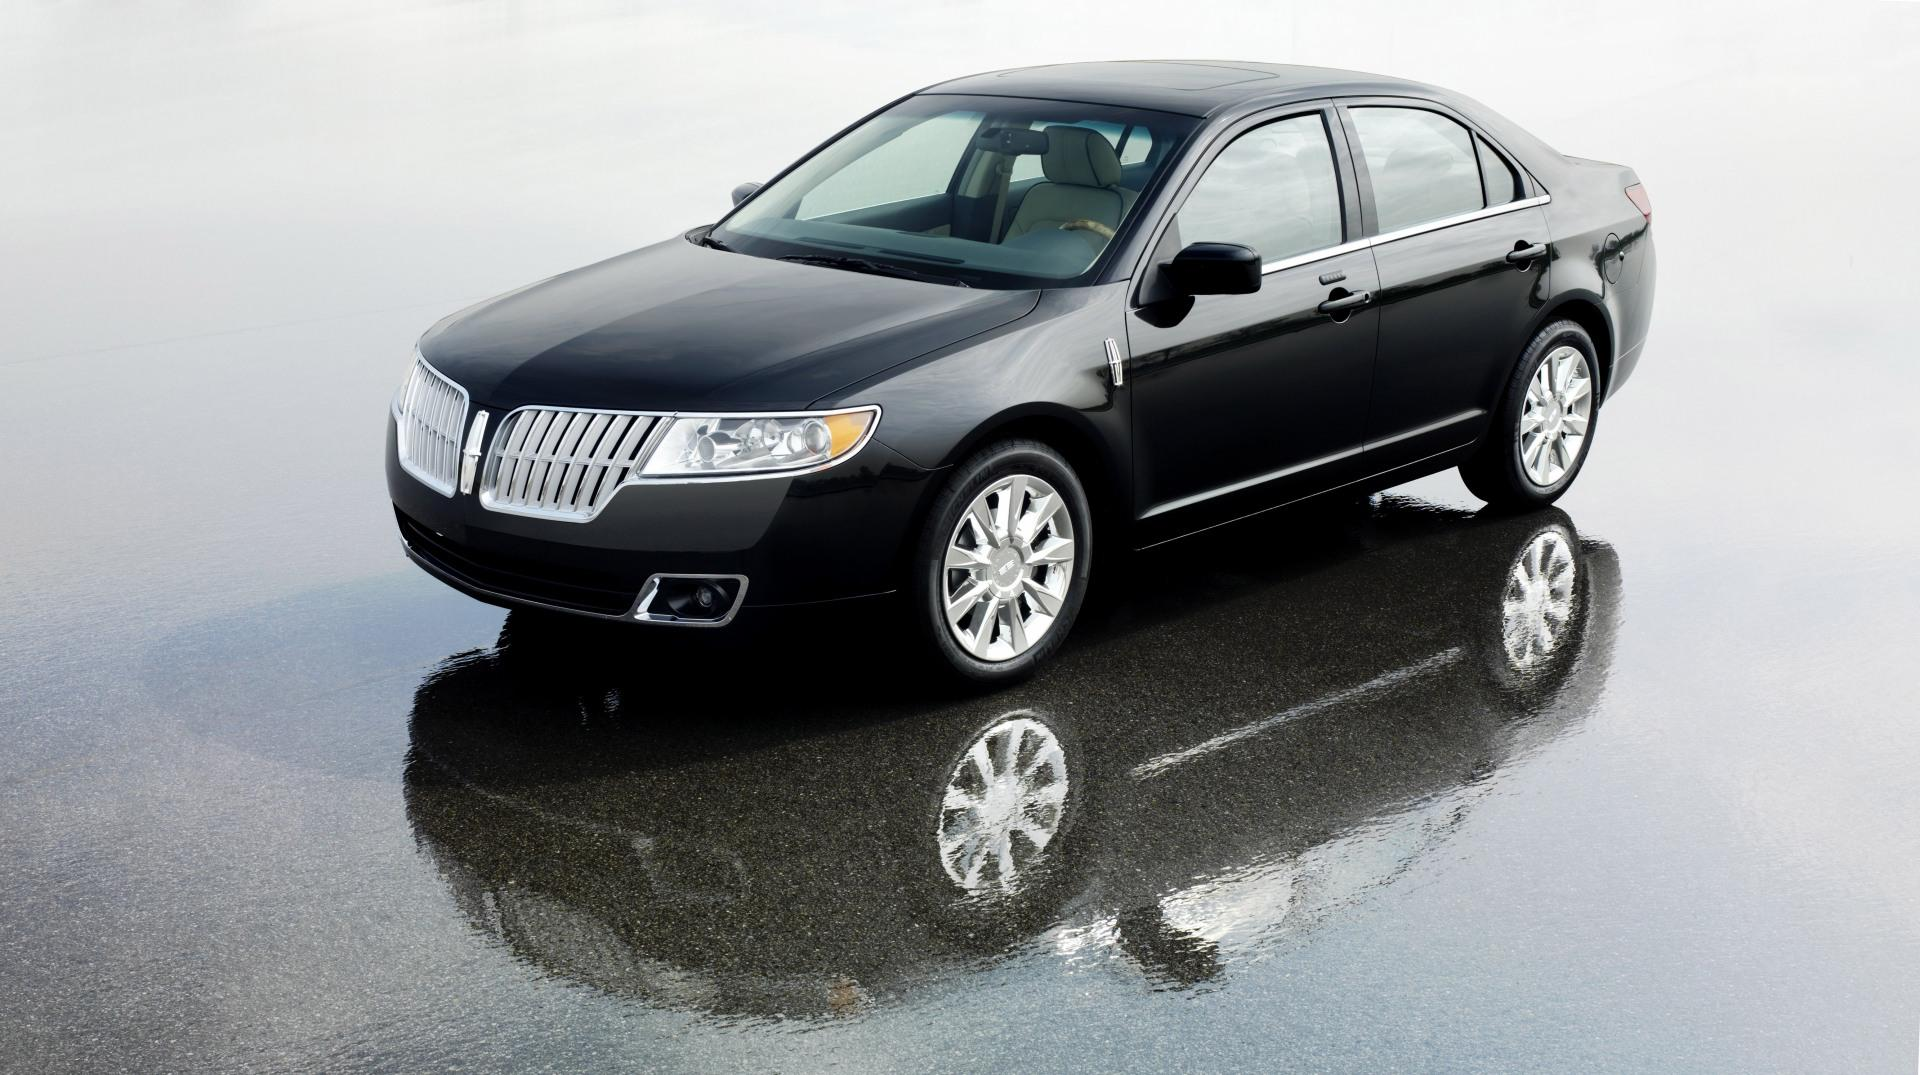 lincolnmkx com accommodating lincoln luxurious auto acco nola reviews mkx white and